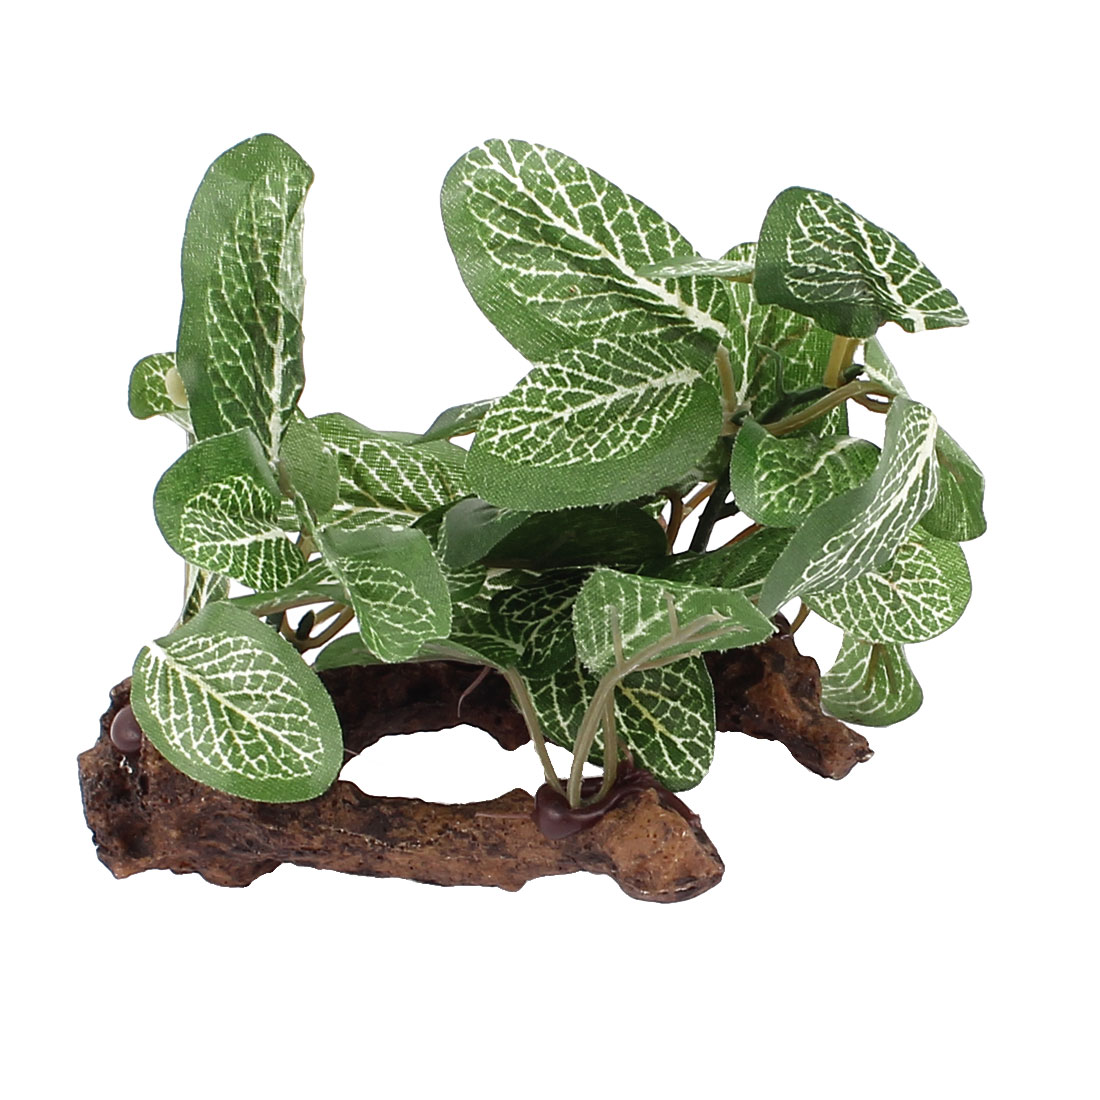 Ceramic Root Shape Base Plastic Sea Weeds Grass Aquarium Plants Decor